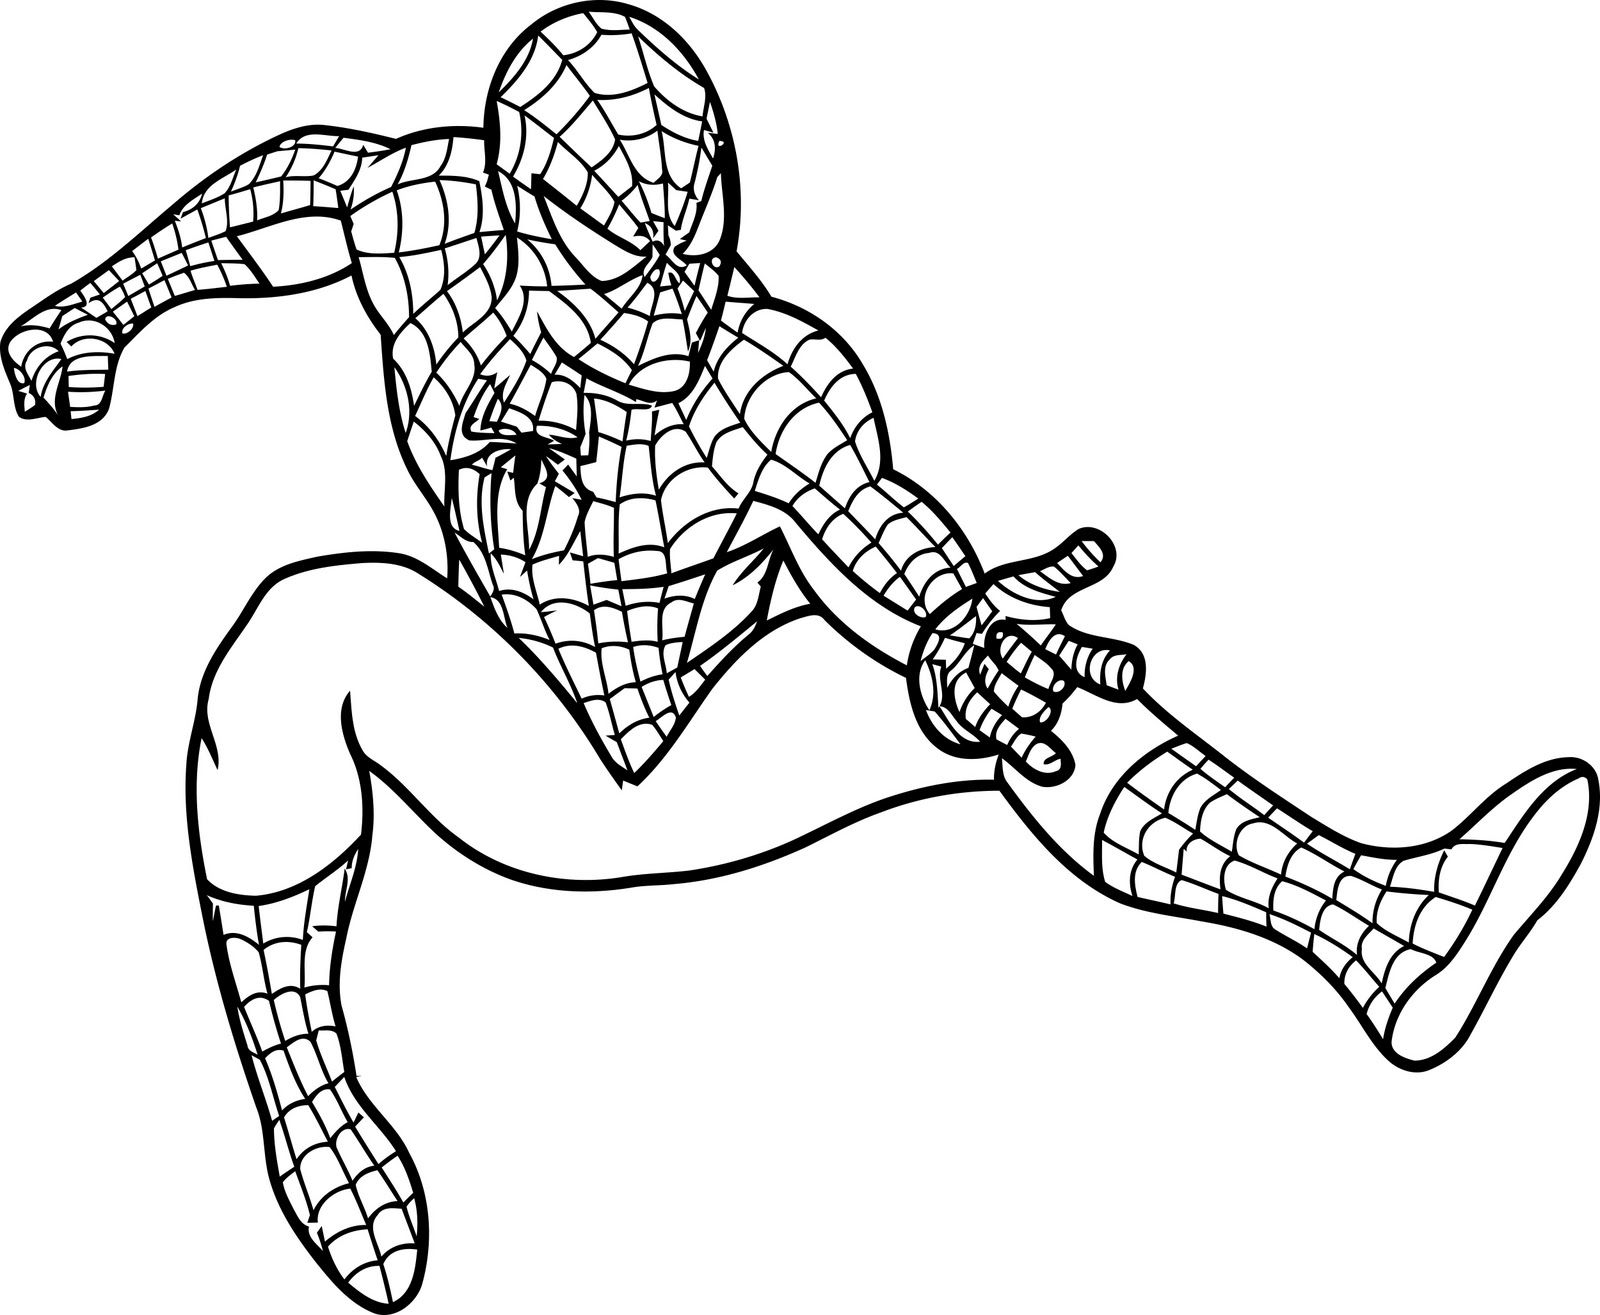 photograph relating to Spiderman Printable Coloring Pages known as Absolutely free Printable Spiderman Coloring Internet pages For Small children Assignments